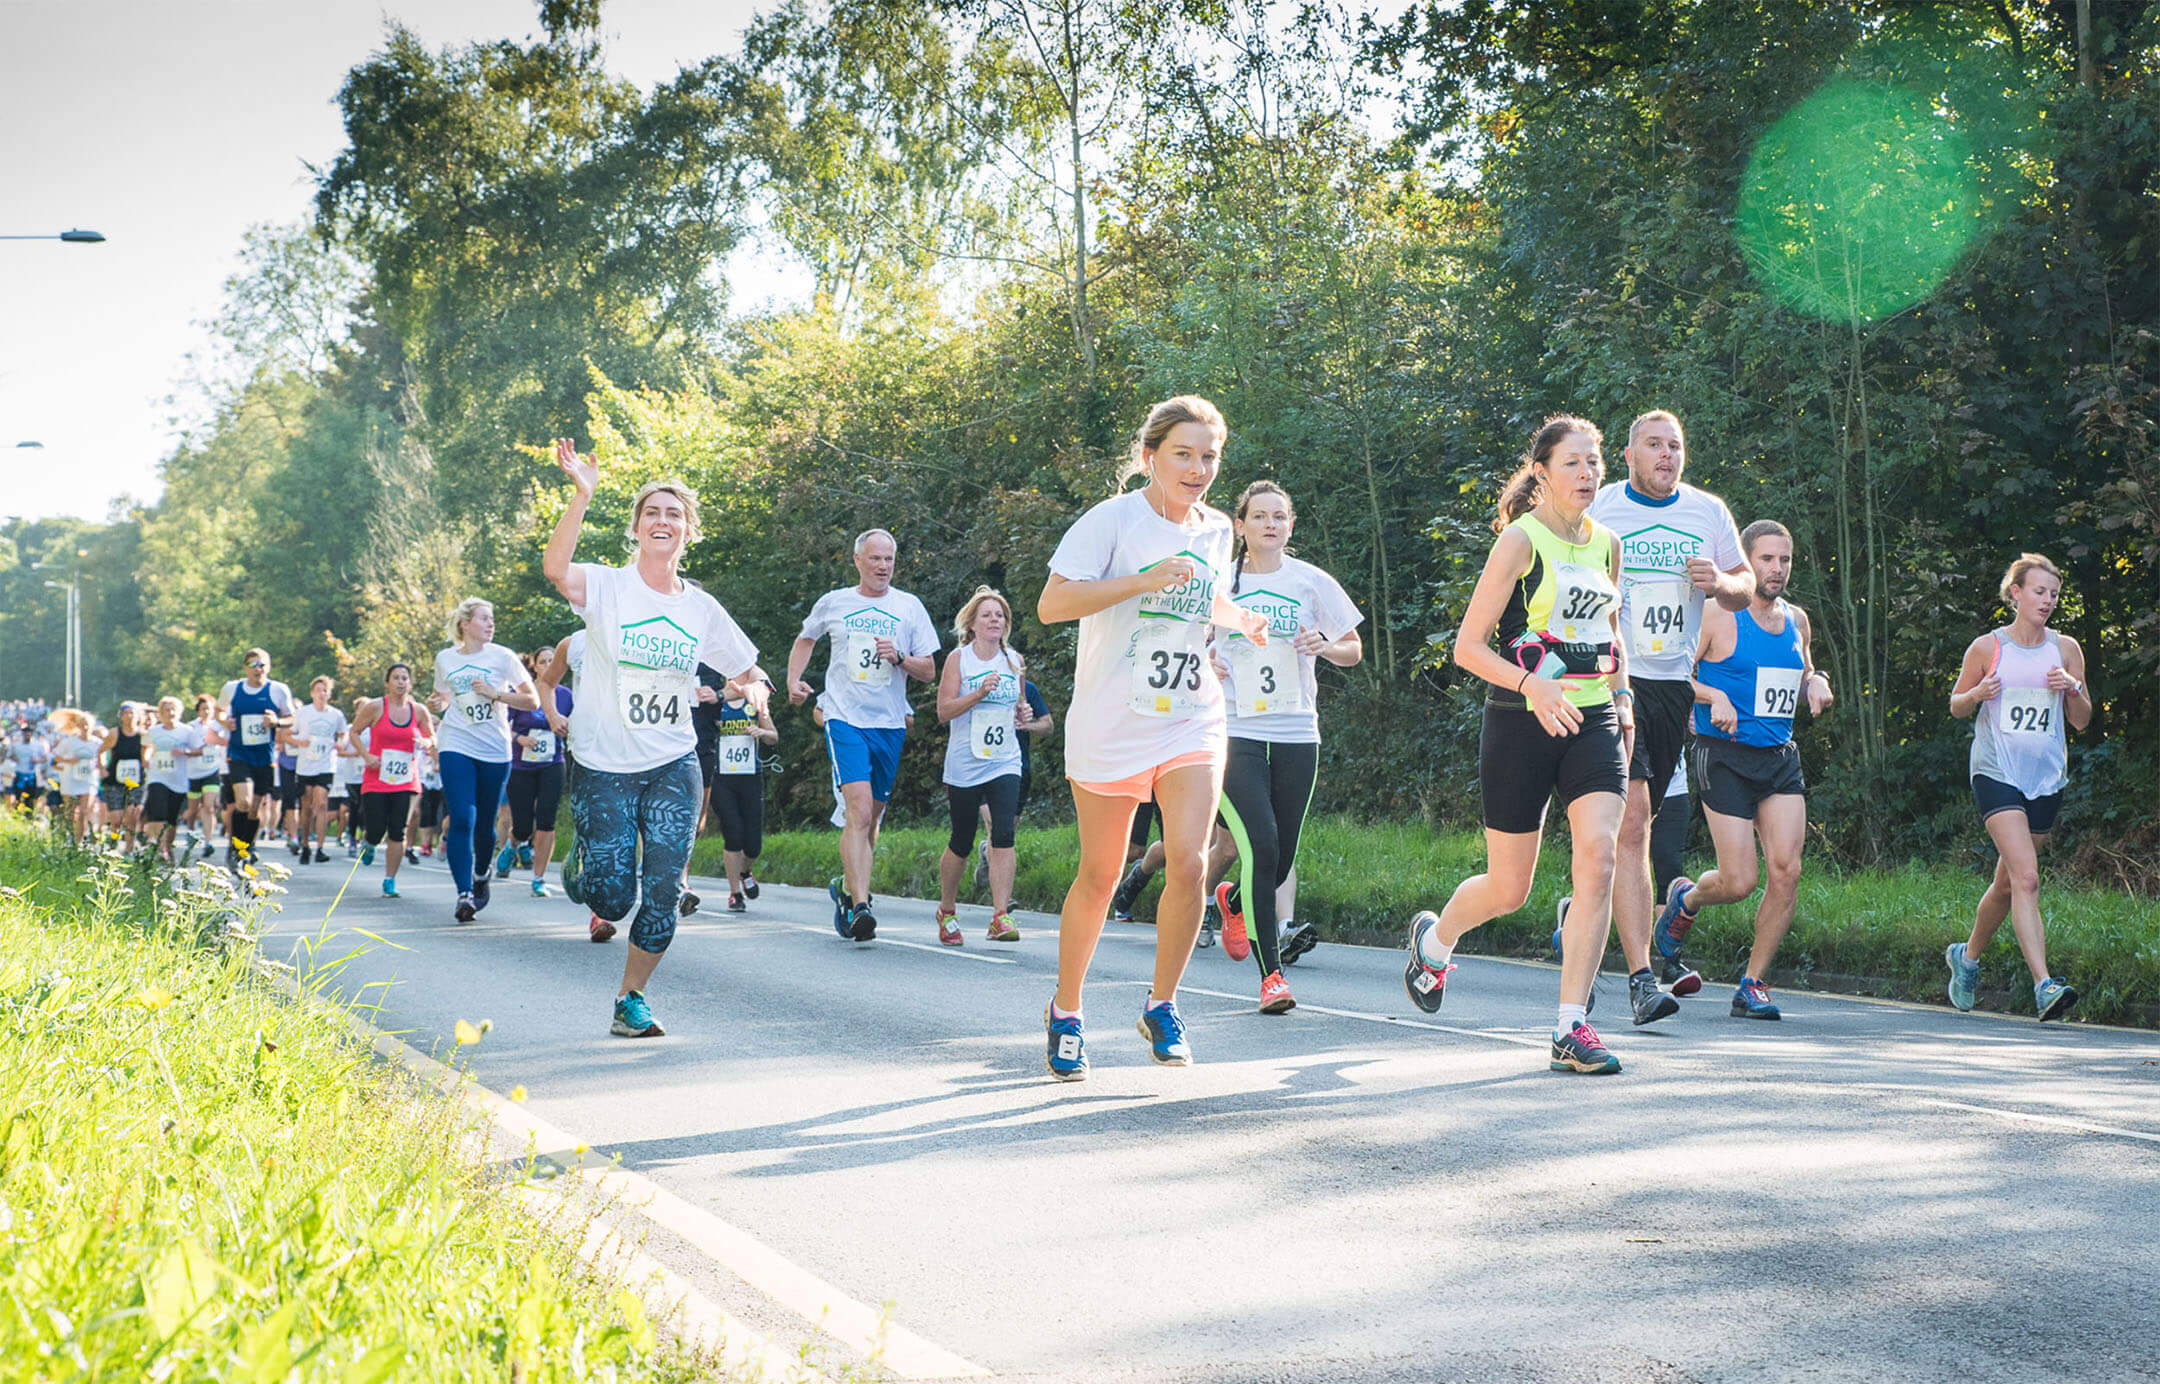 People in the hospice run